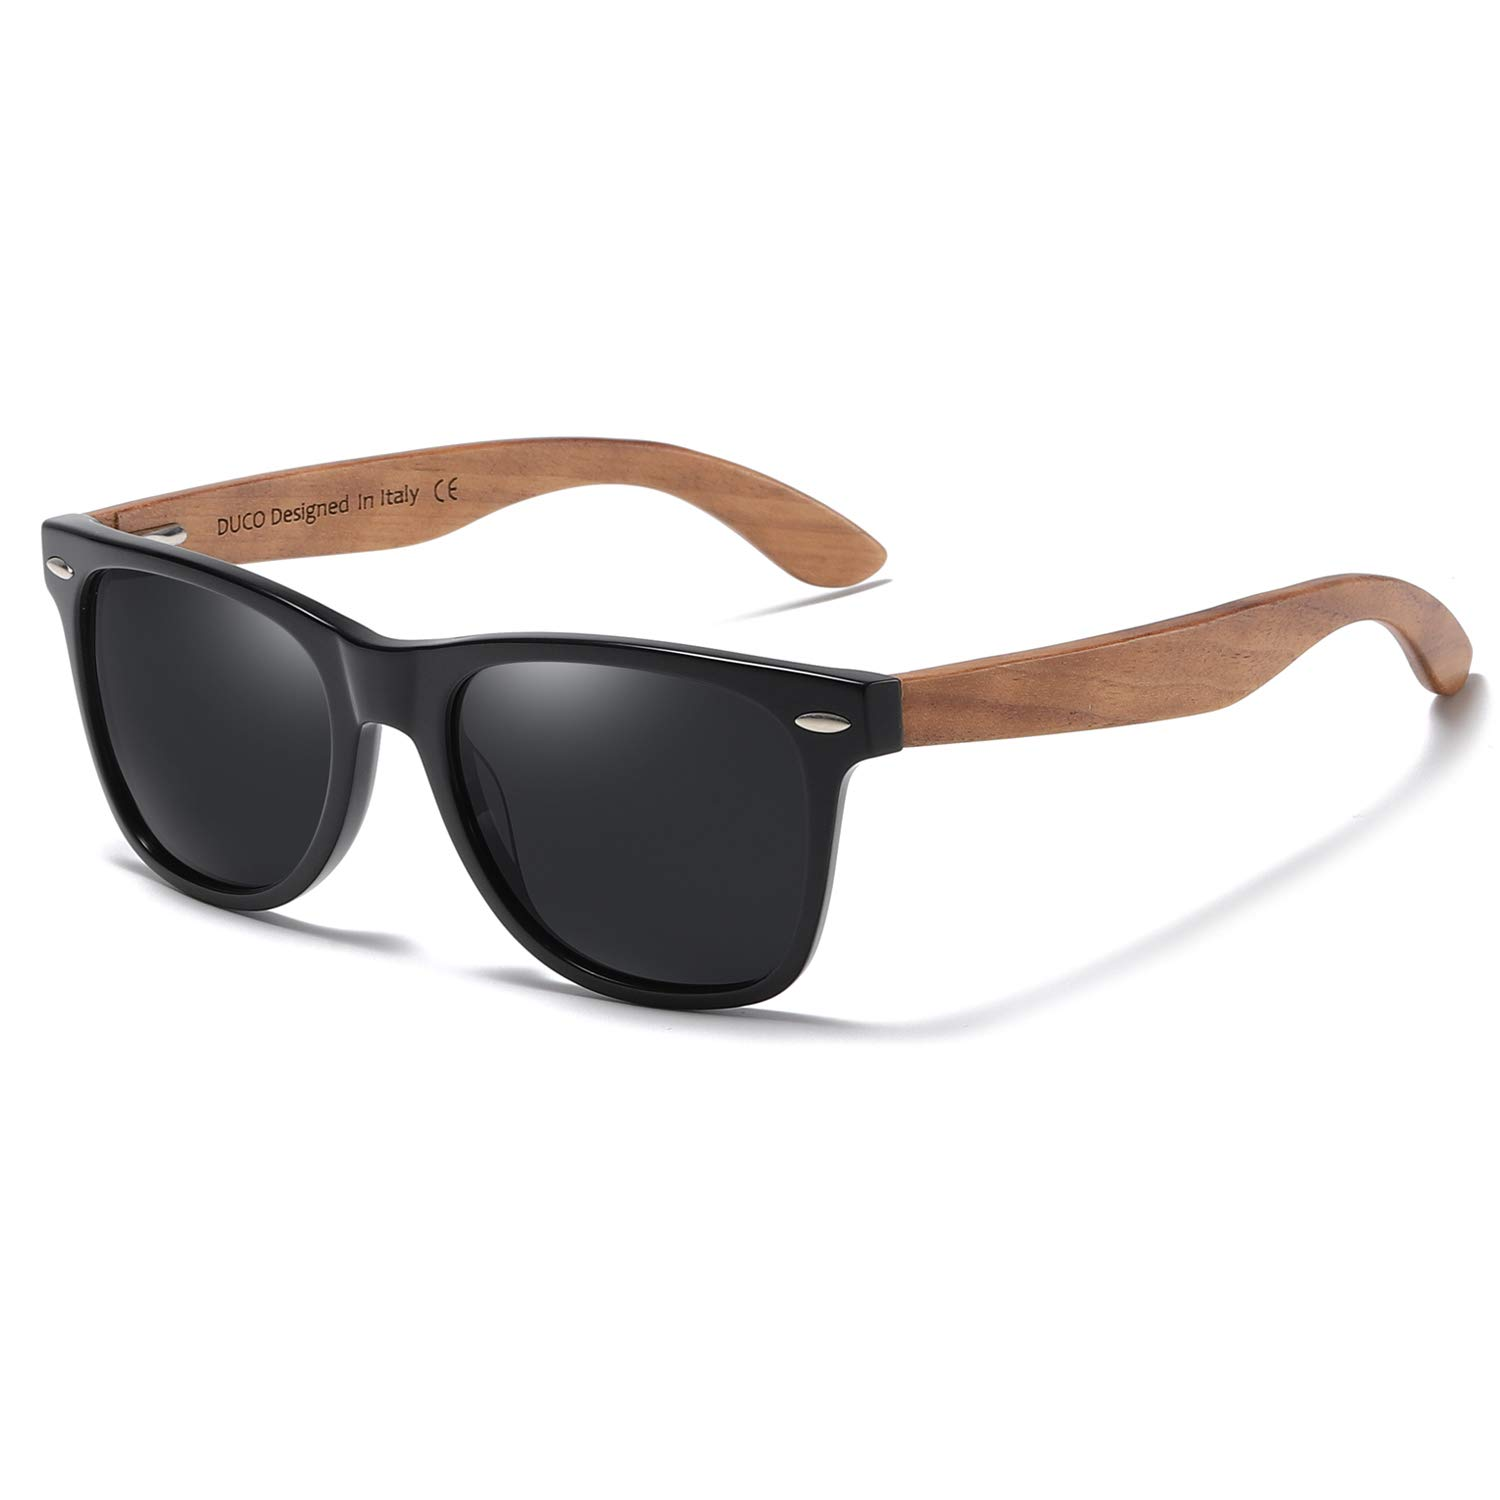 DUCO Polarized Driving Eyewear Handmade Wooden Sunglasses for Men and Women 2141 (Grey Lens Walnut Temple) by DUCO